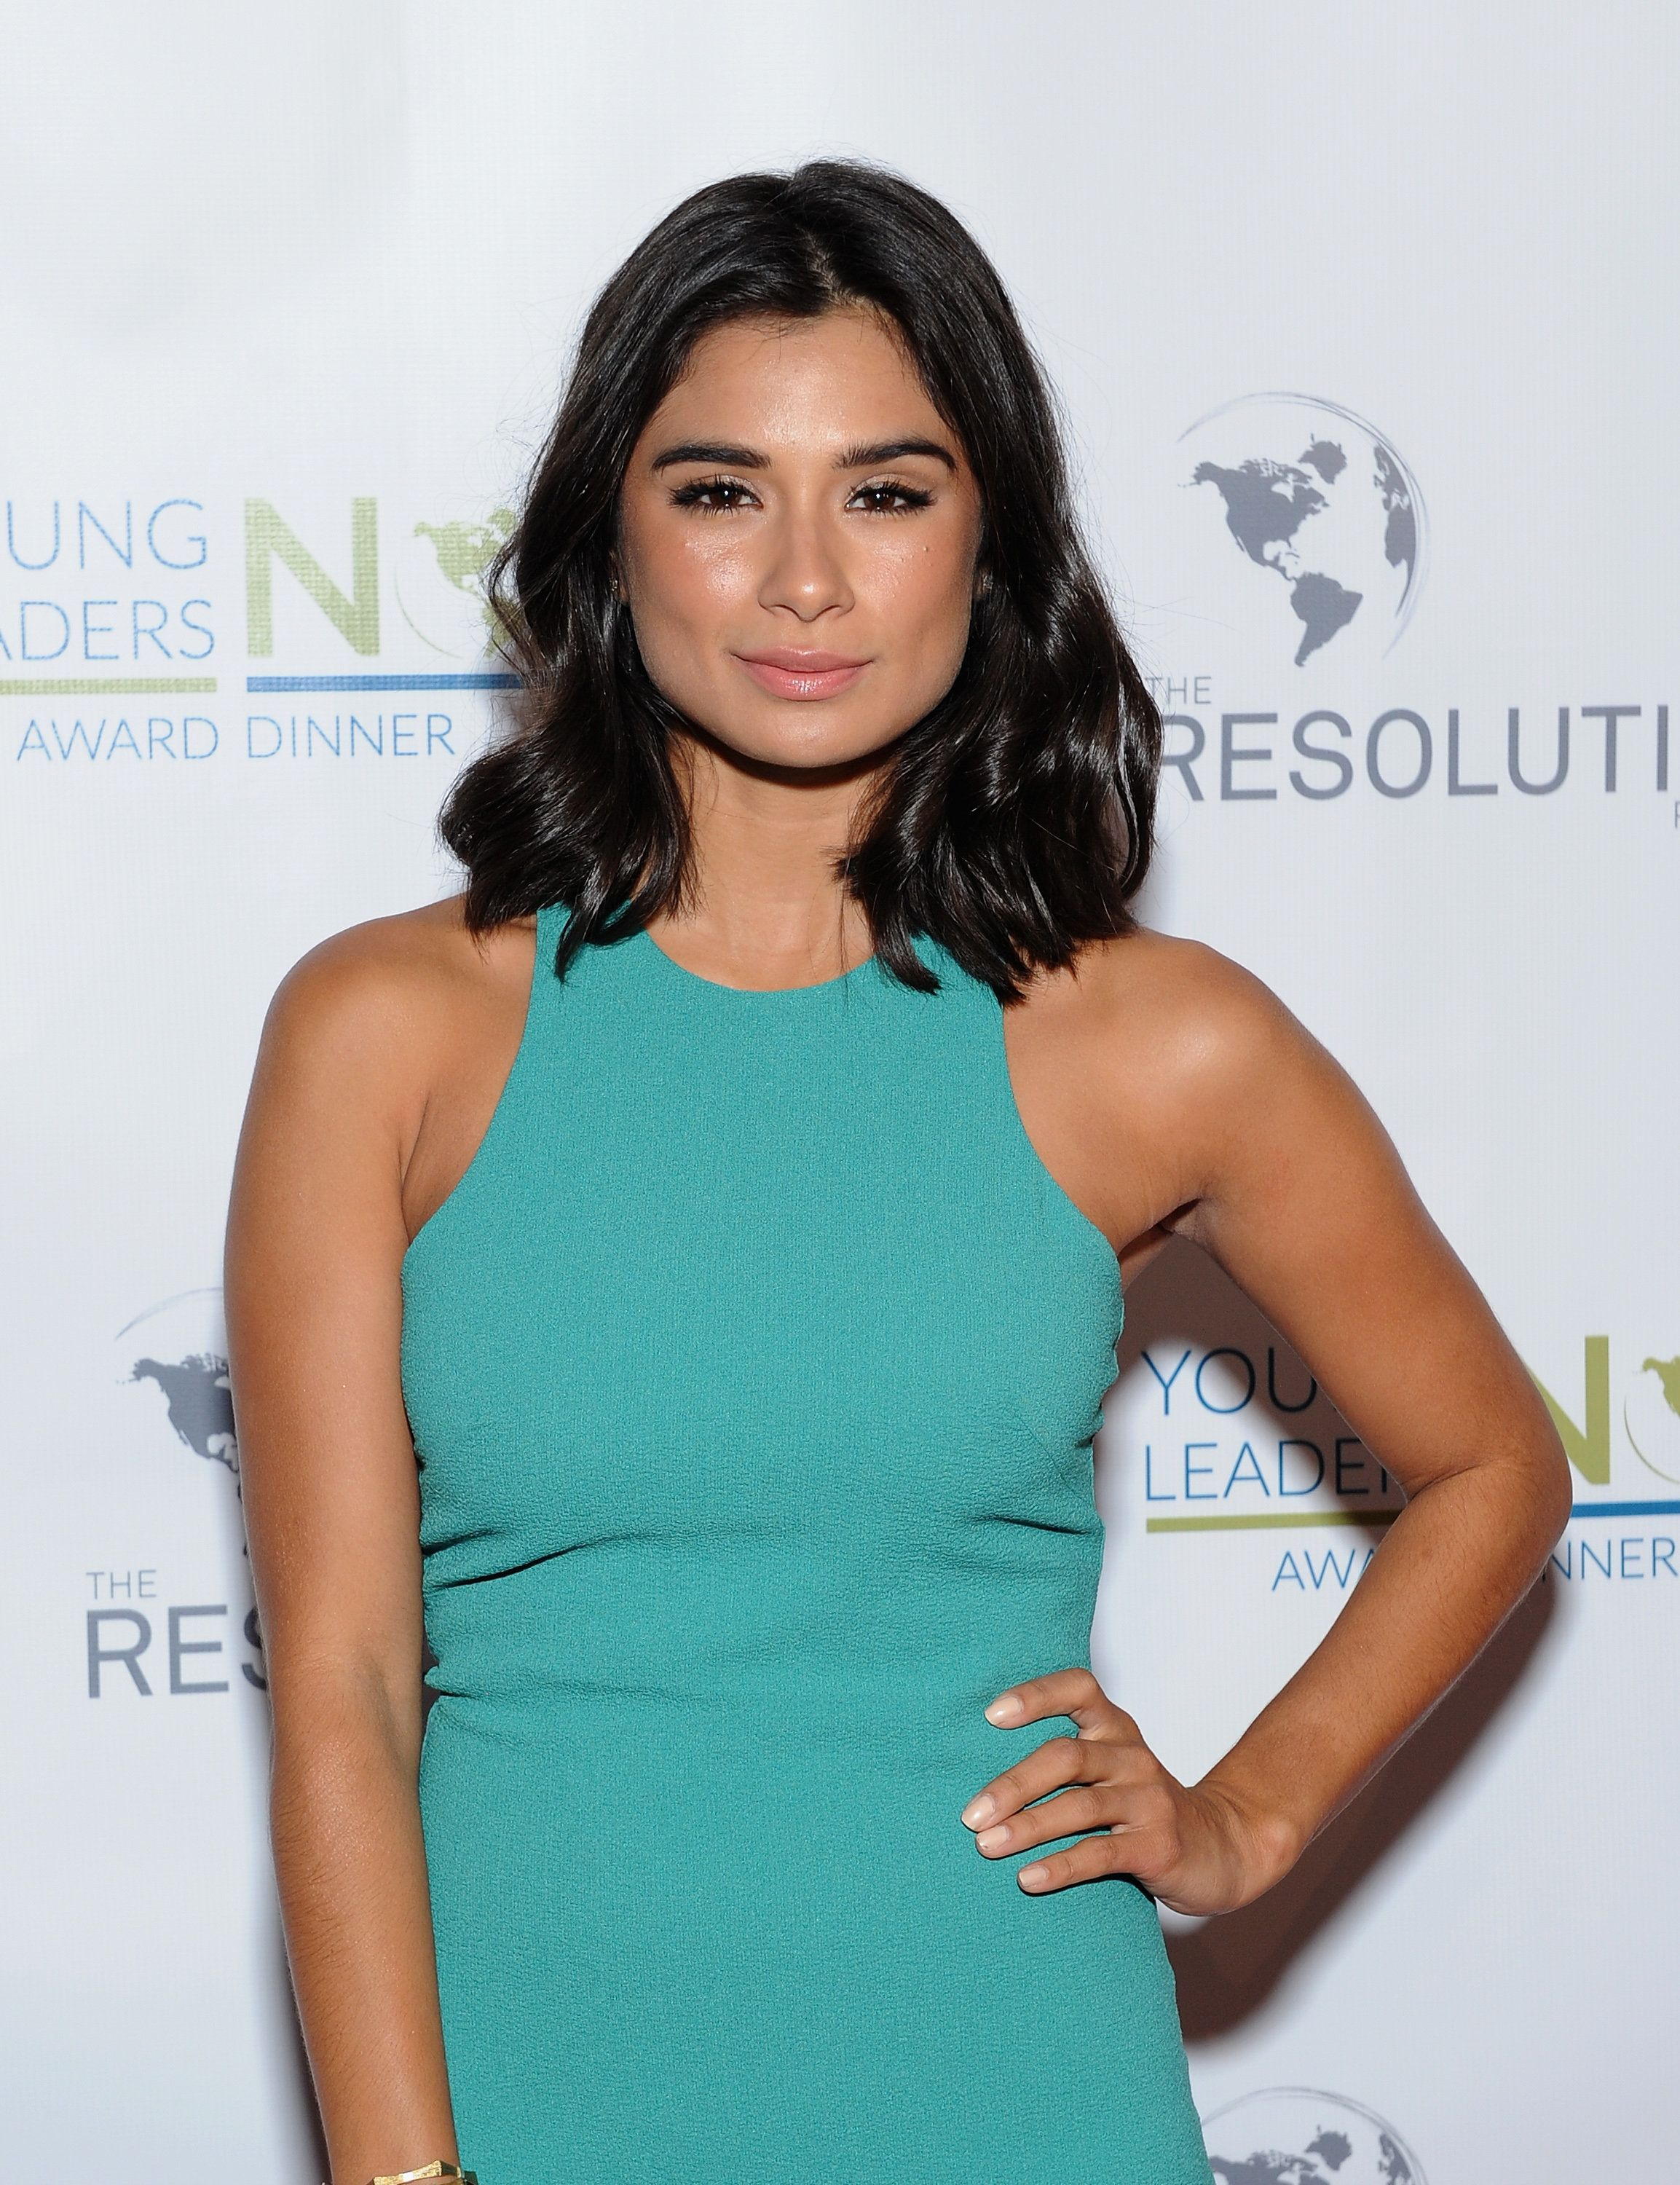 NEW YORK, NY - MAY 12:  Actress Diane Guerrero attends The Resolution Project Young Leaders Now award dinner 2015 on May 12, 2015 in New York City.  (Photo by Andrew Toth/Getty Images for The Resolution Project)